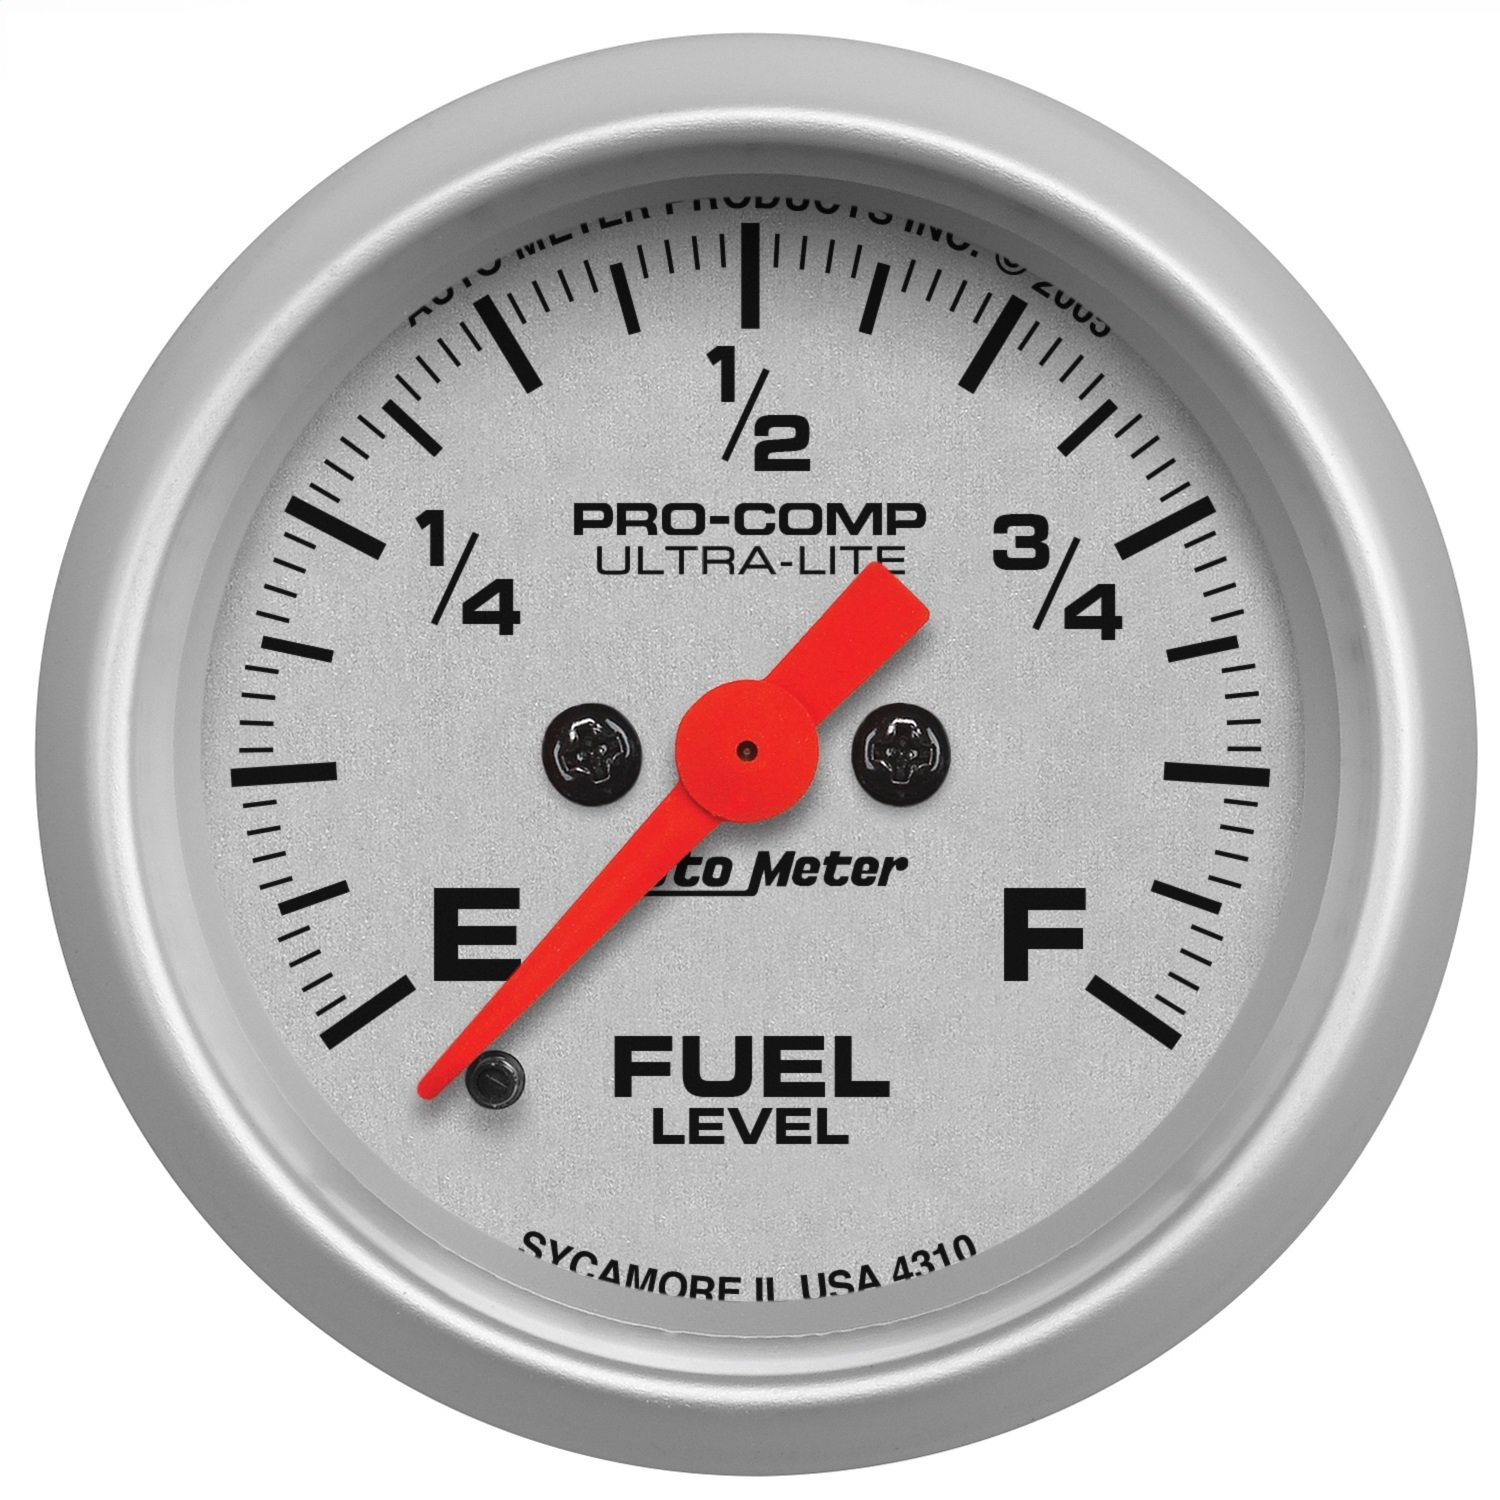 Auto Meter 4310 Ultra-Lite Electric Programmable Fuel Level Gauge by Auto Meter